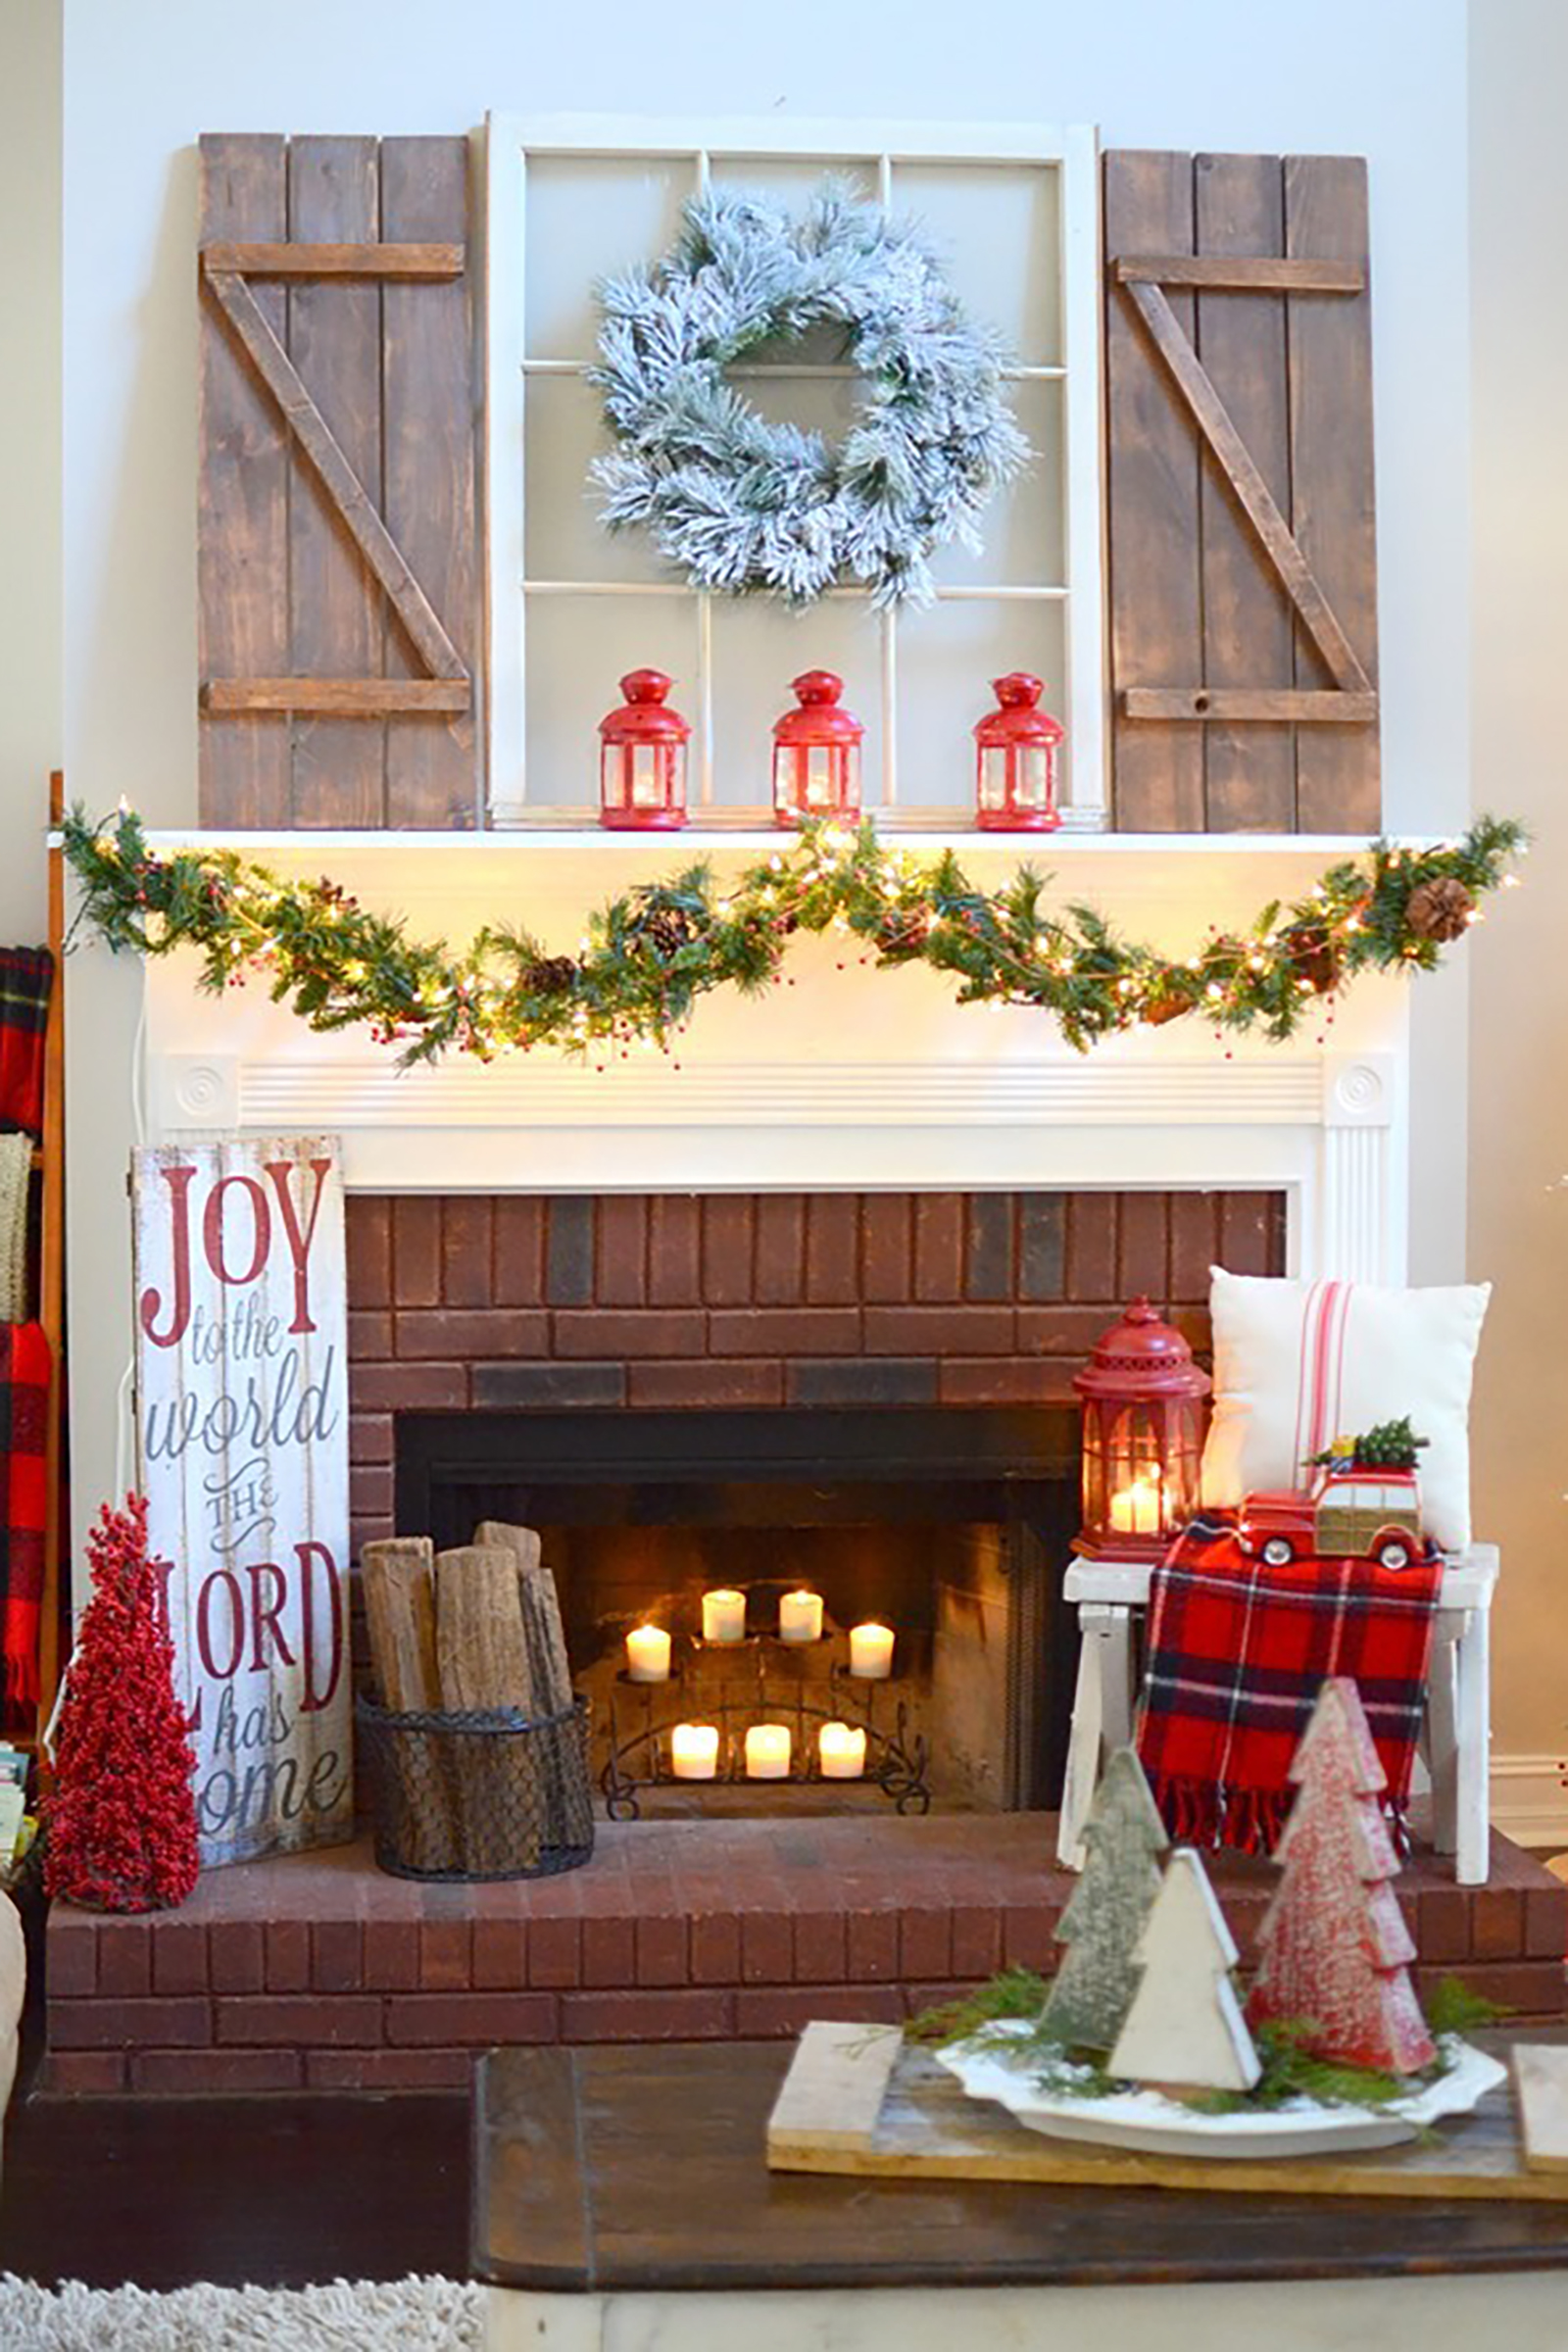 Farmhouse Rustic Fireplace Mantel Decor 35 Christmas Mantel Decorations Ideas For Holiday